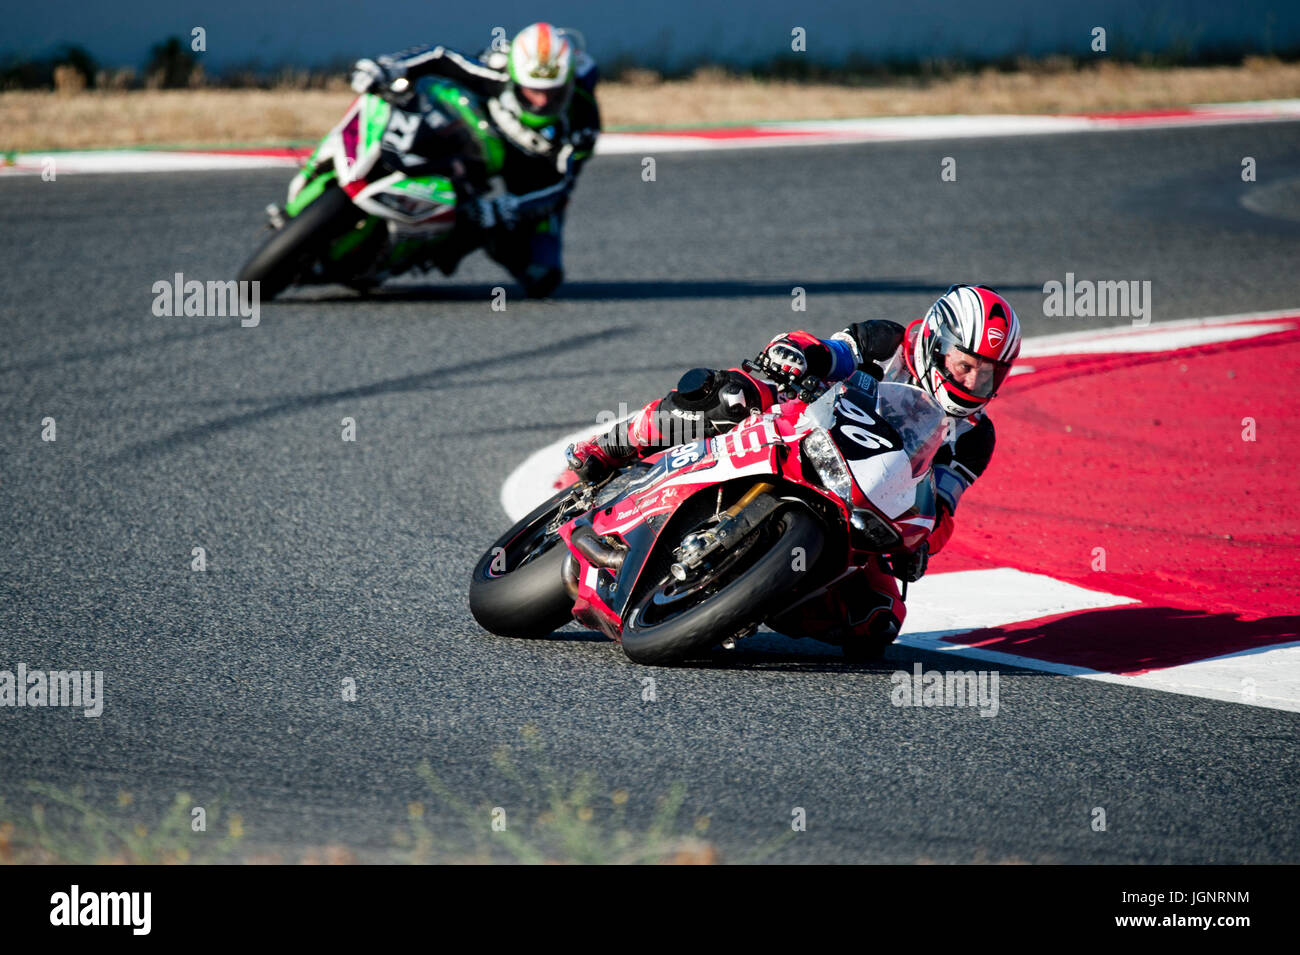 Barcelona, Spain. 9th July, 2017. Sebastien Cherillot of the Team Le Manx in action during the 24 Horas de Catalunya Stock Photo